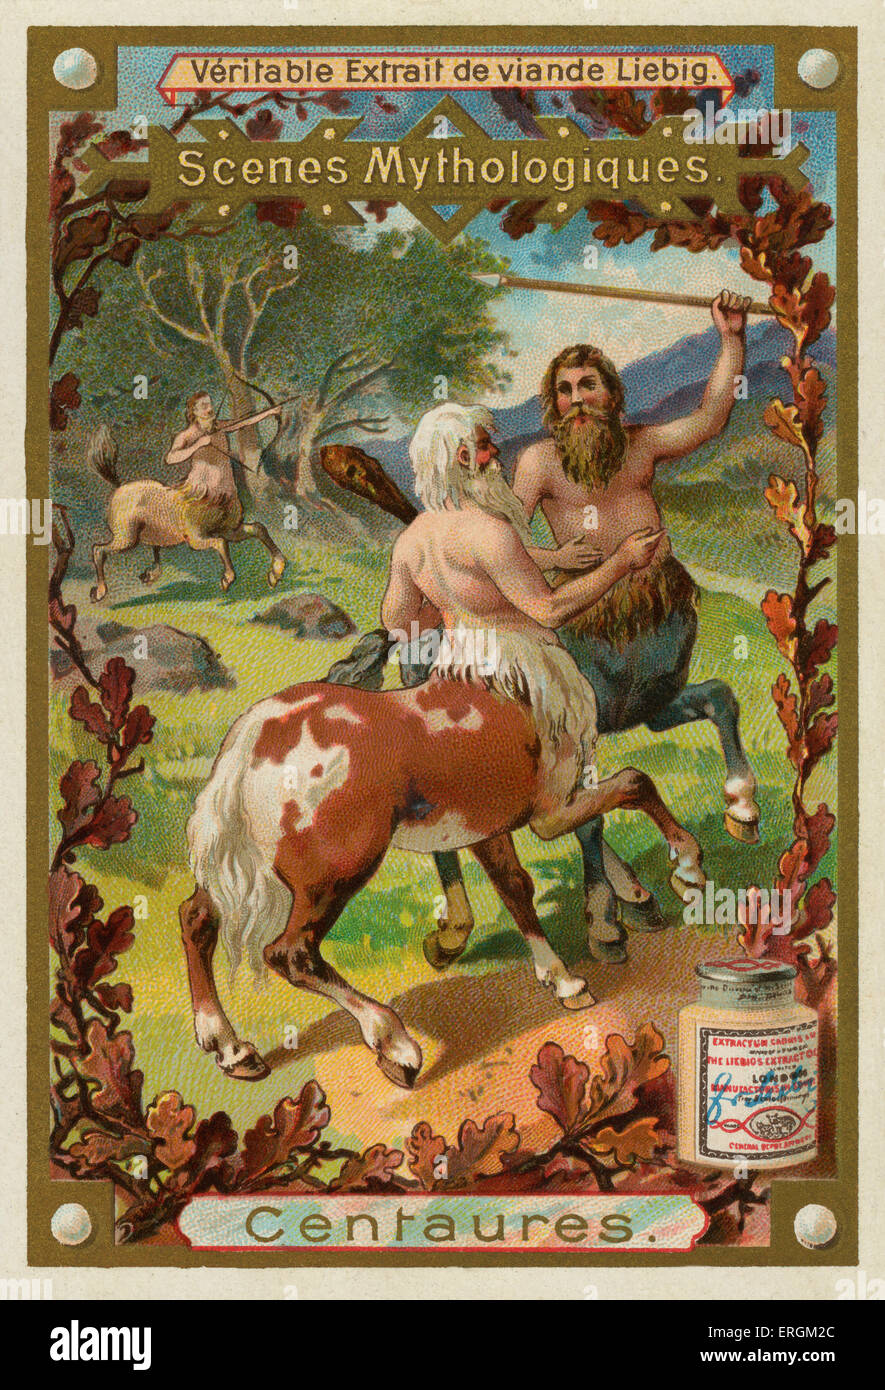 Centaur- a member of a composite race of creatures, part human and part horse. Liebig card, Mythological Scenes - Stock Image